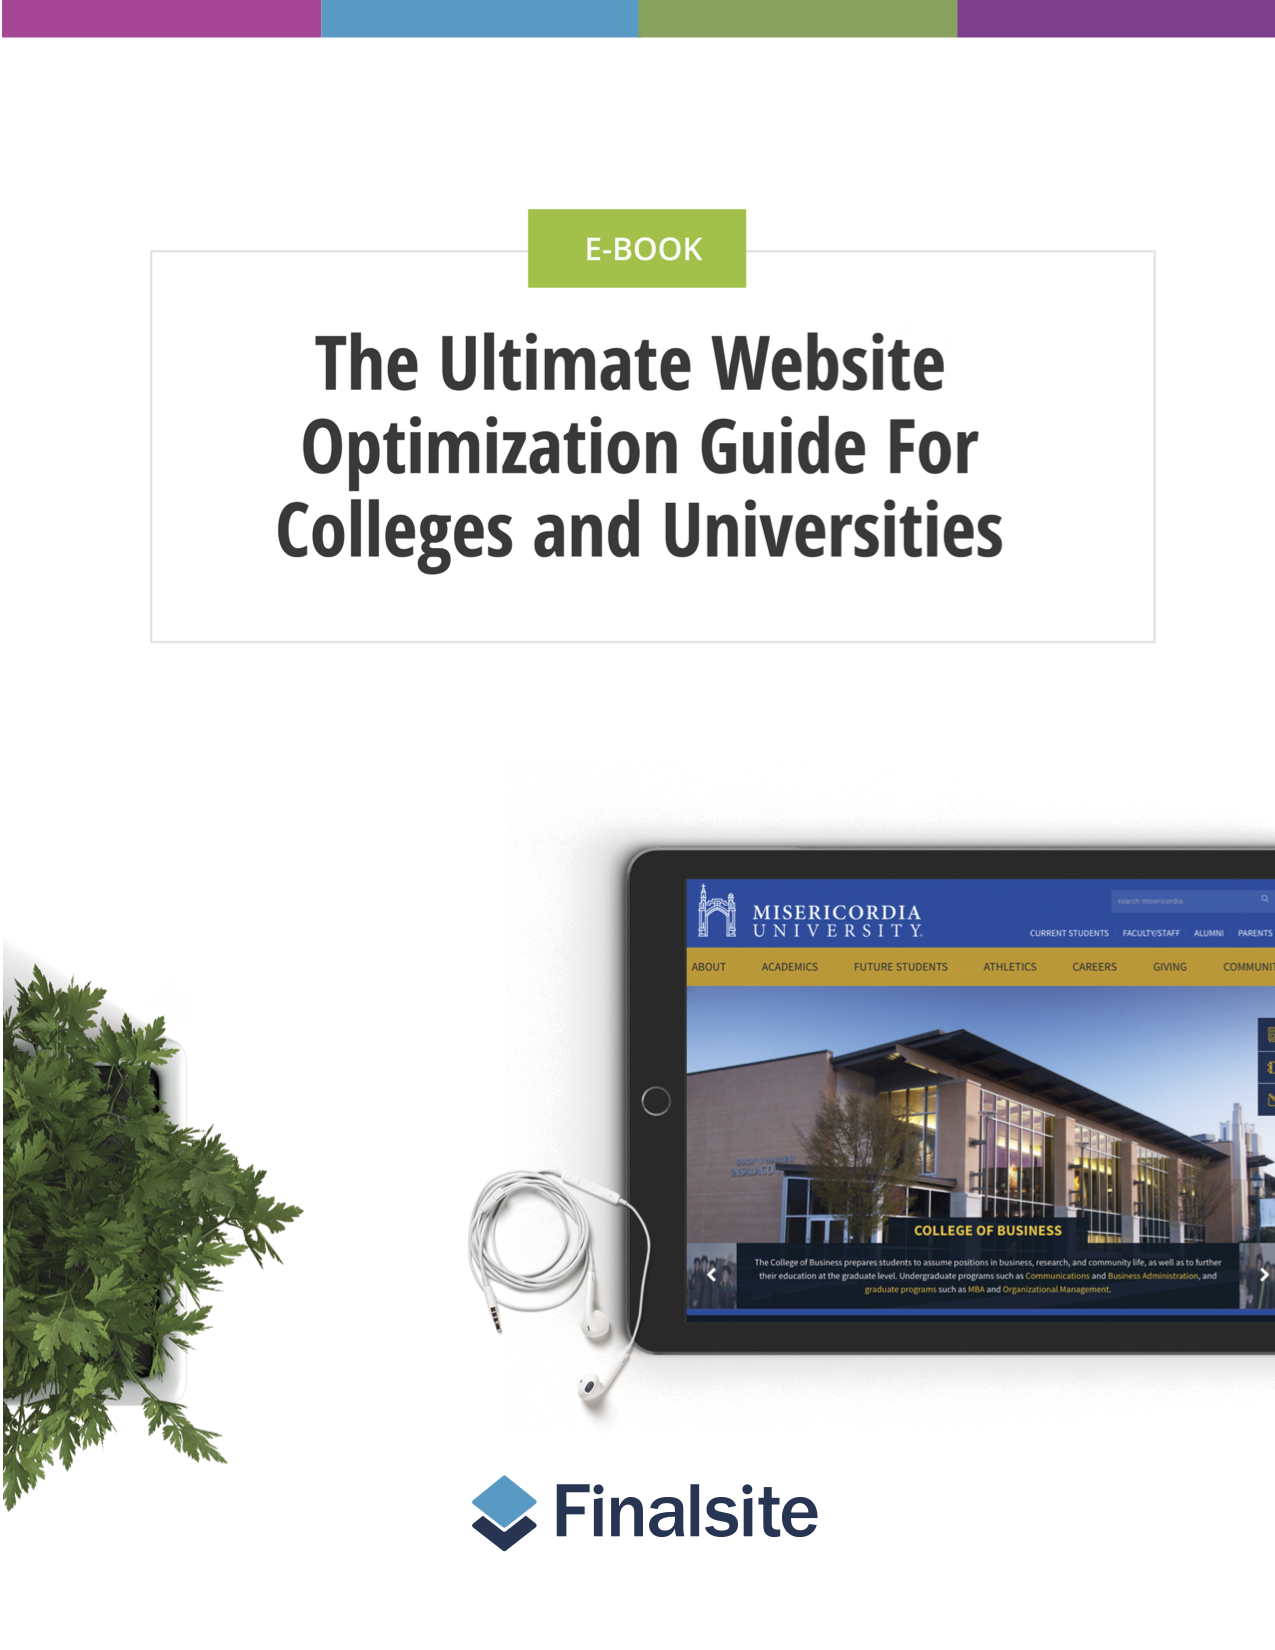 The Ultimate Website Optimization Guide for Colleges and Universities